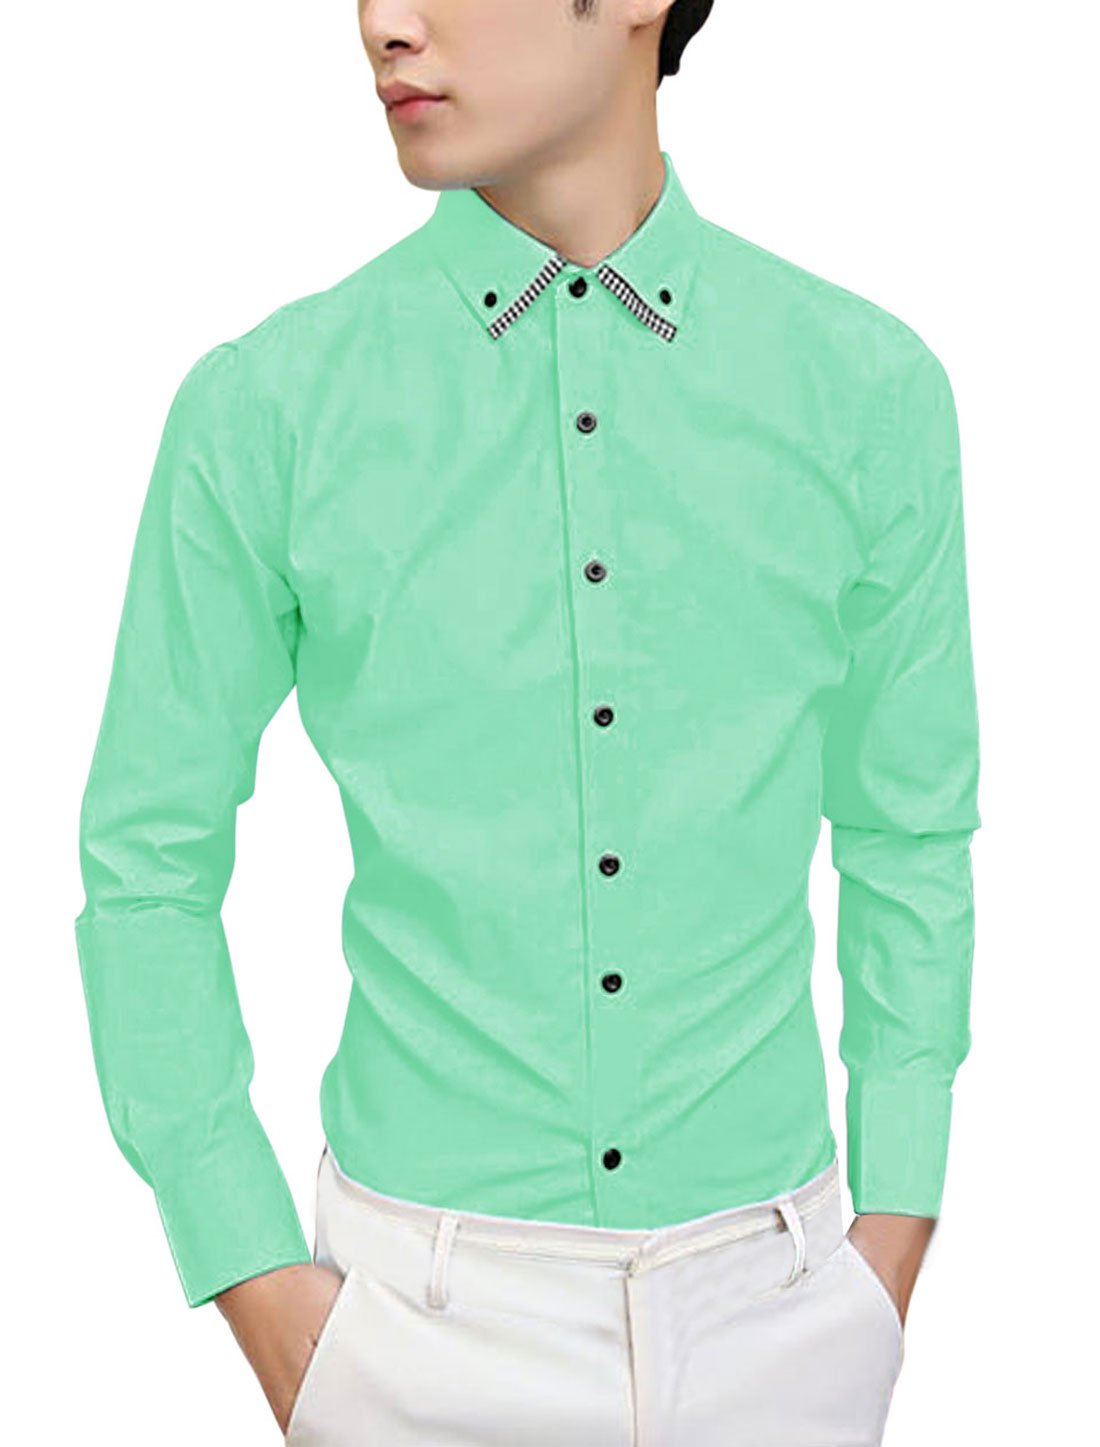 Man Single Breasted Full Sleeves Casual Mint Shirt M